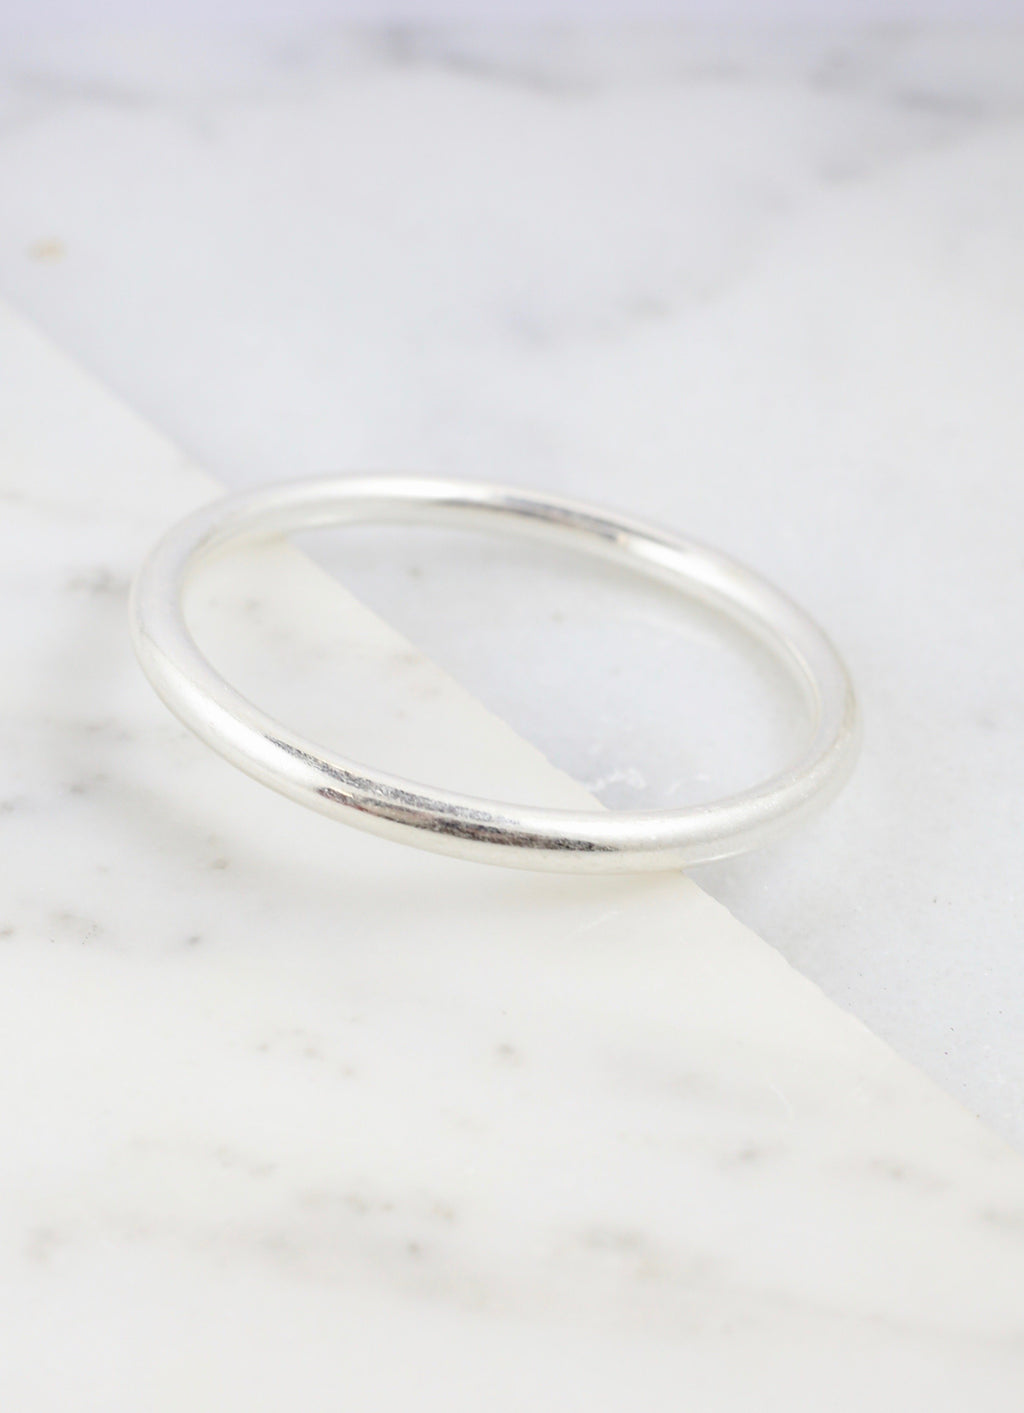 Avera 6MM Worn Silver Bangle - Caroline Hill